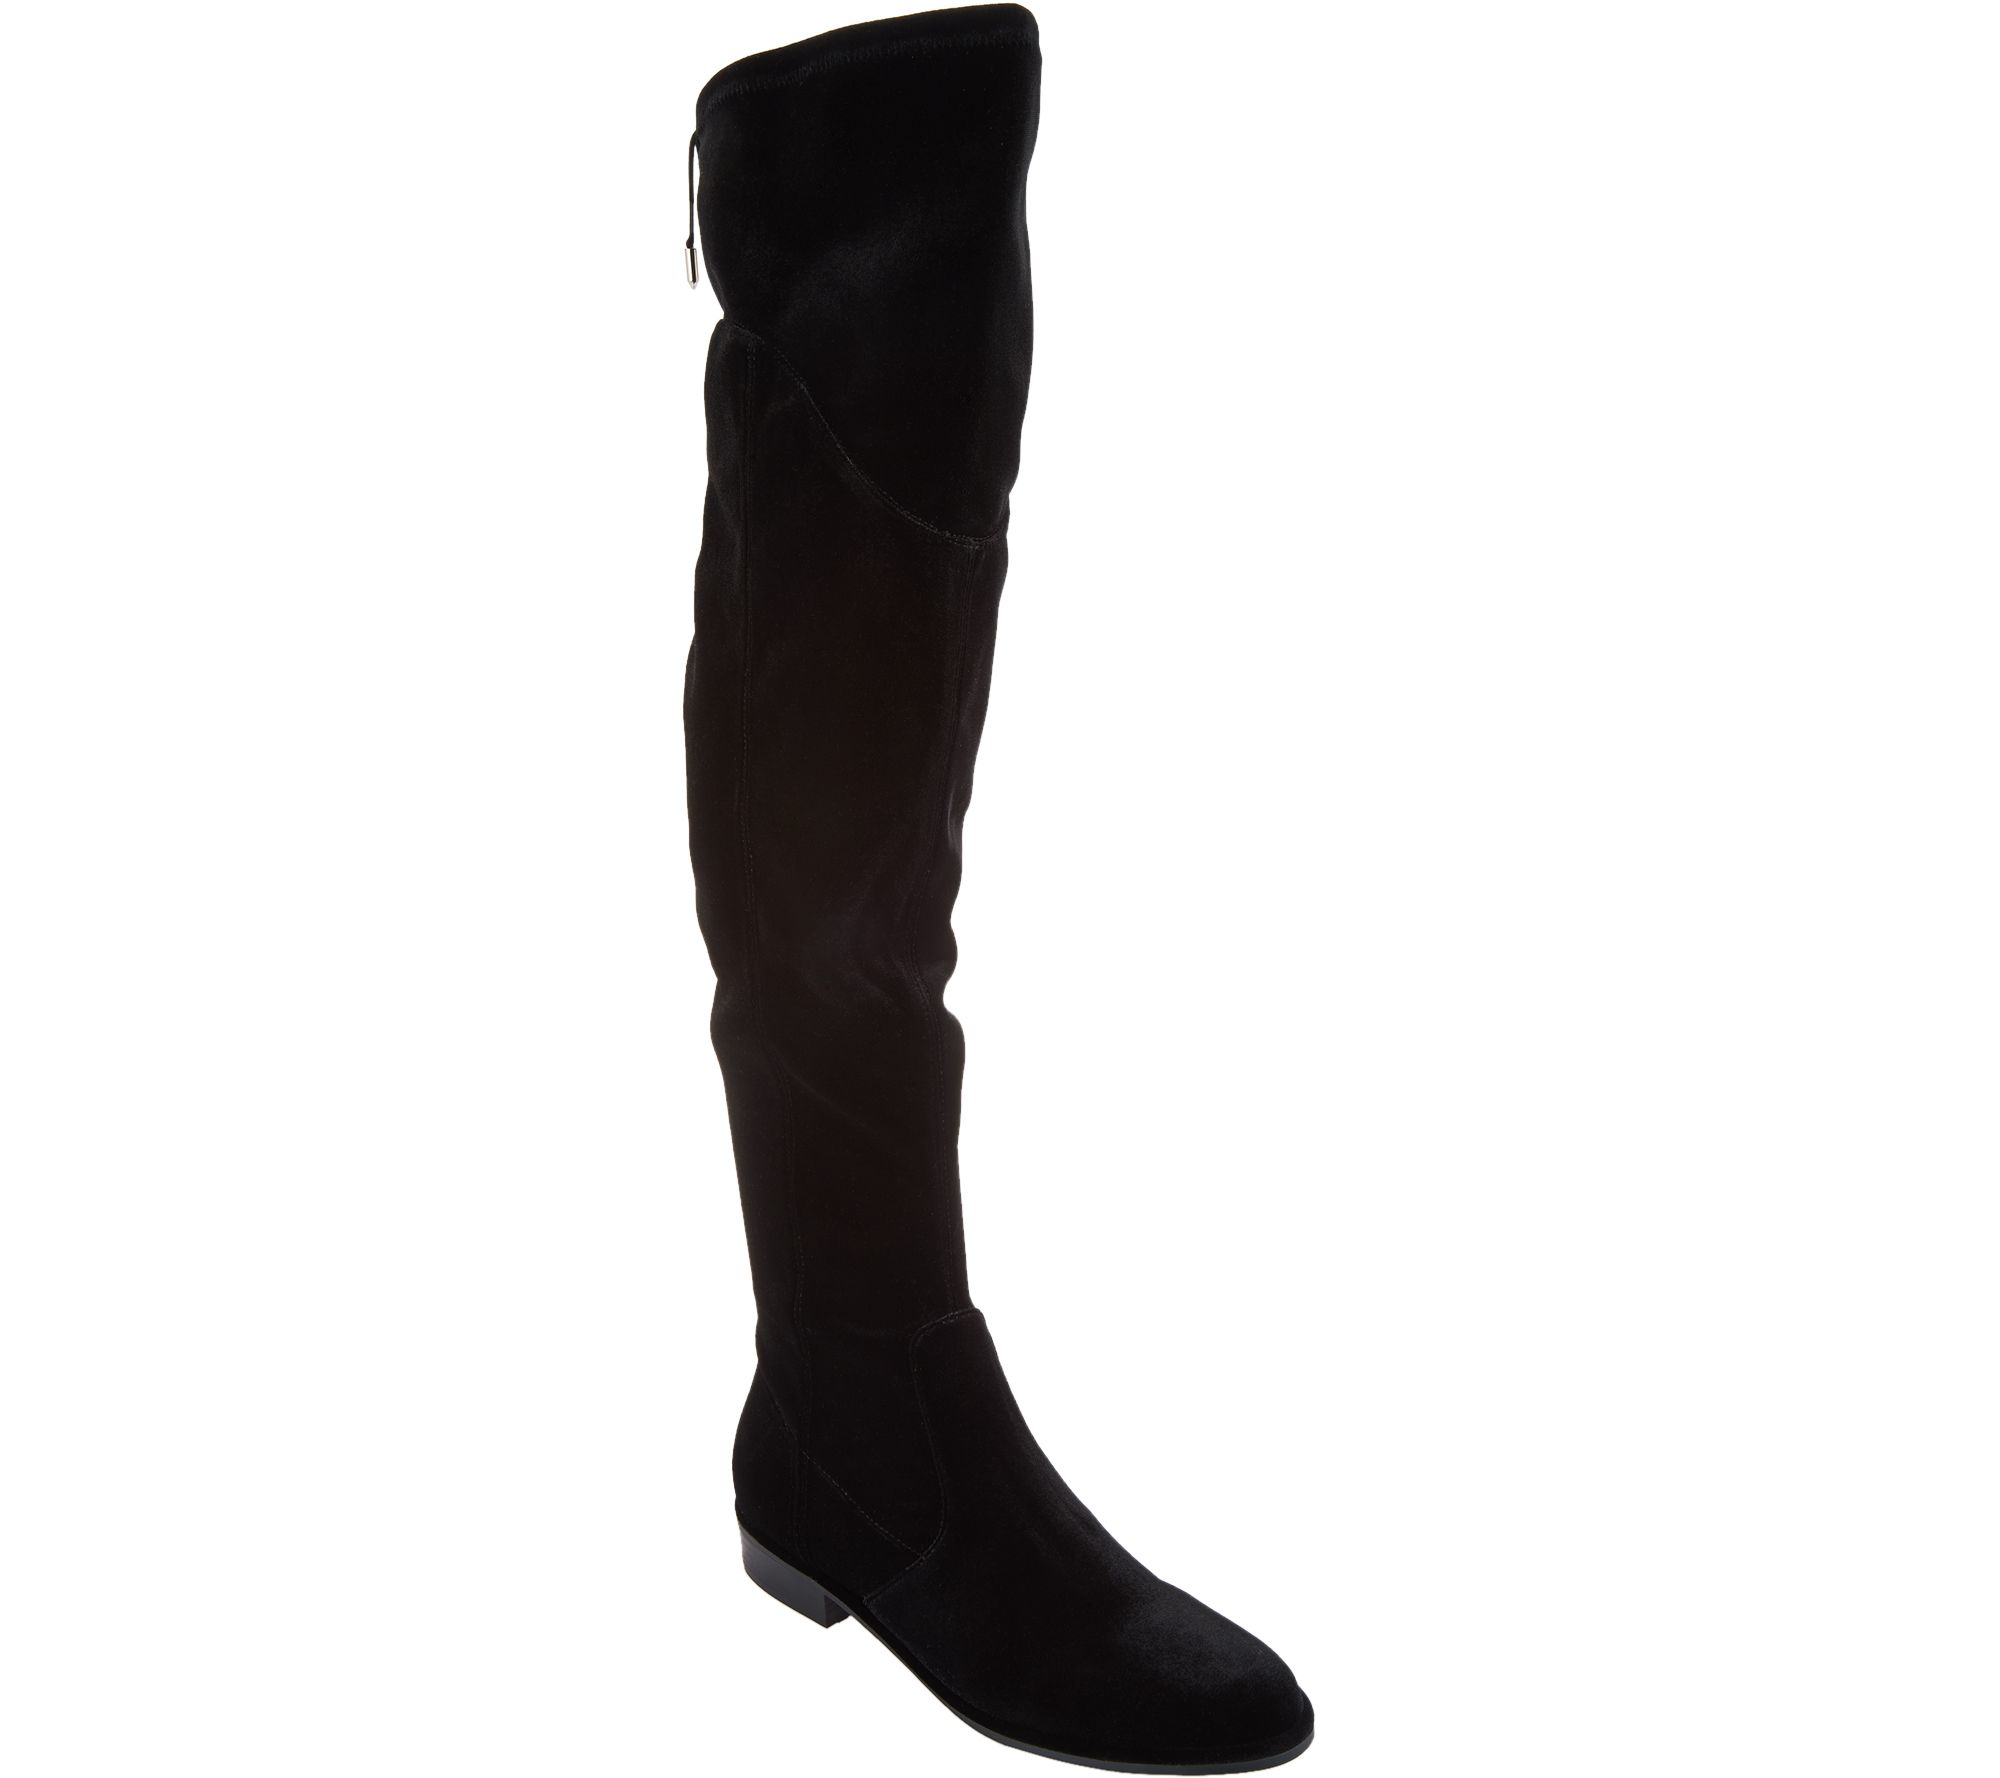 cc7aeca0da6 Marc Fisher Faux Suede or Velvet Over-the-Knee Boots - Hulie - Page 1 —  QVC.com